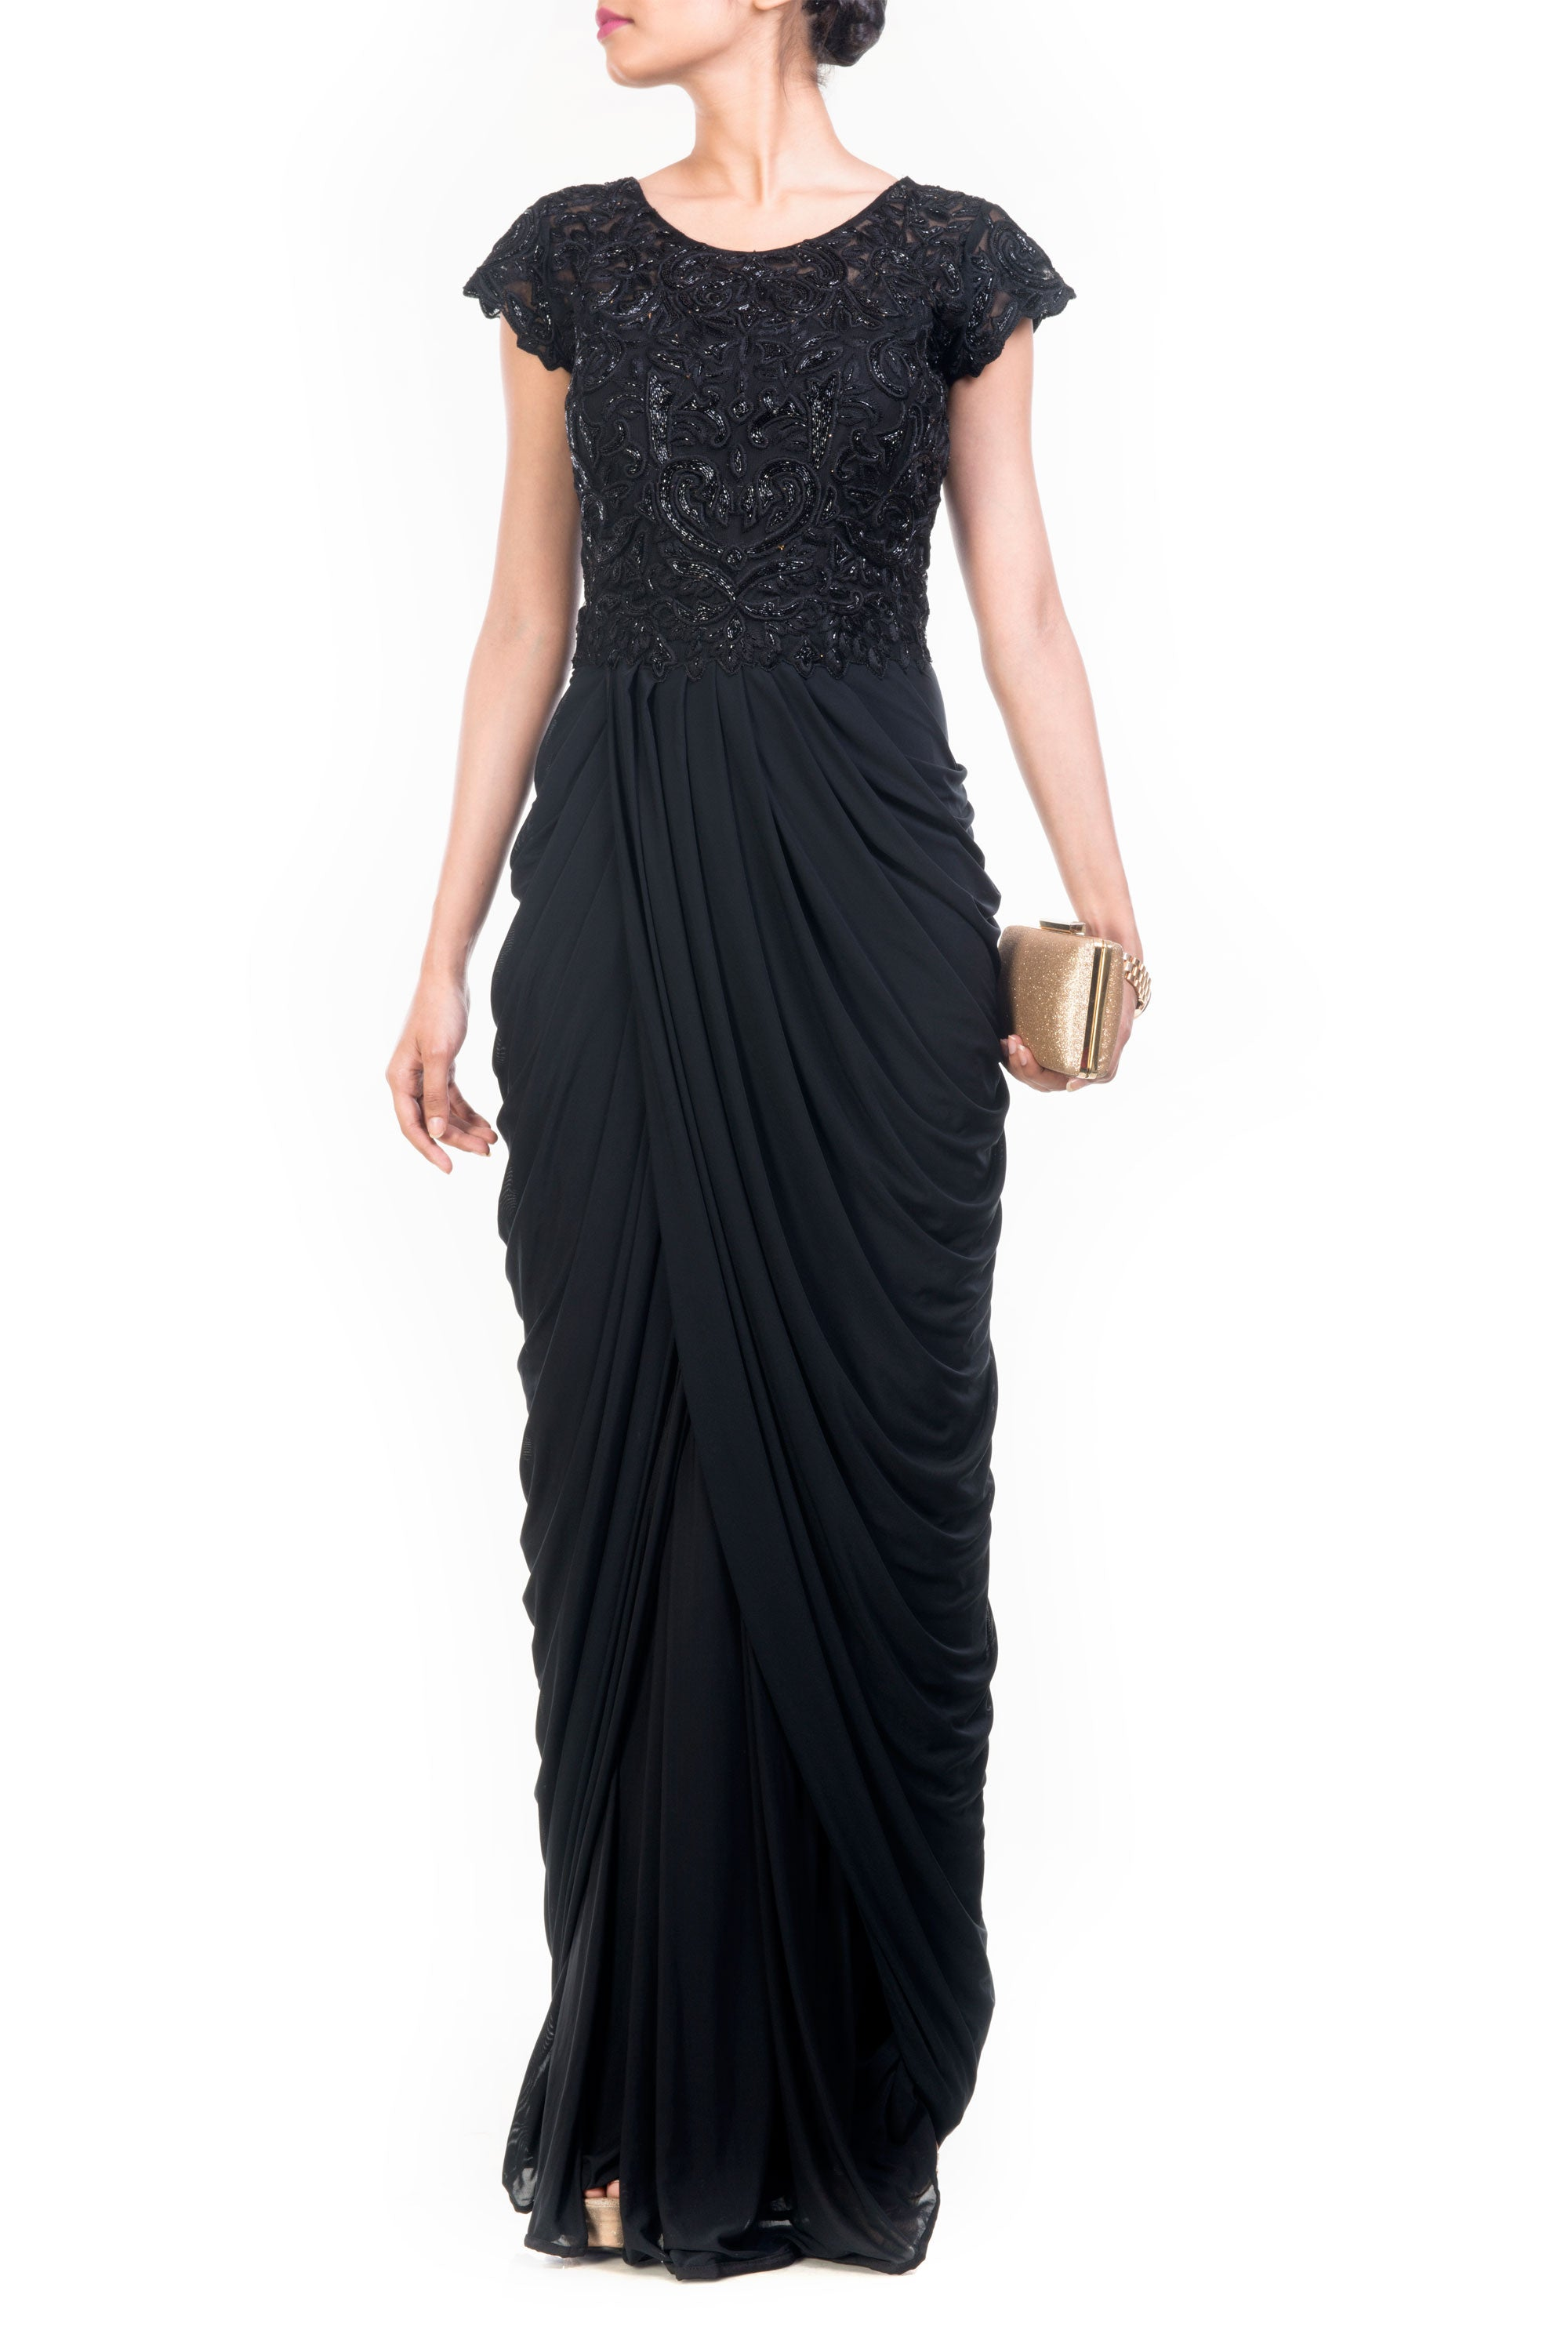 Black Cocktail Gown Front